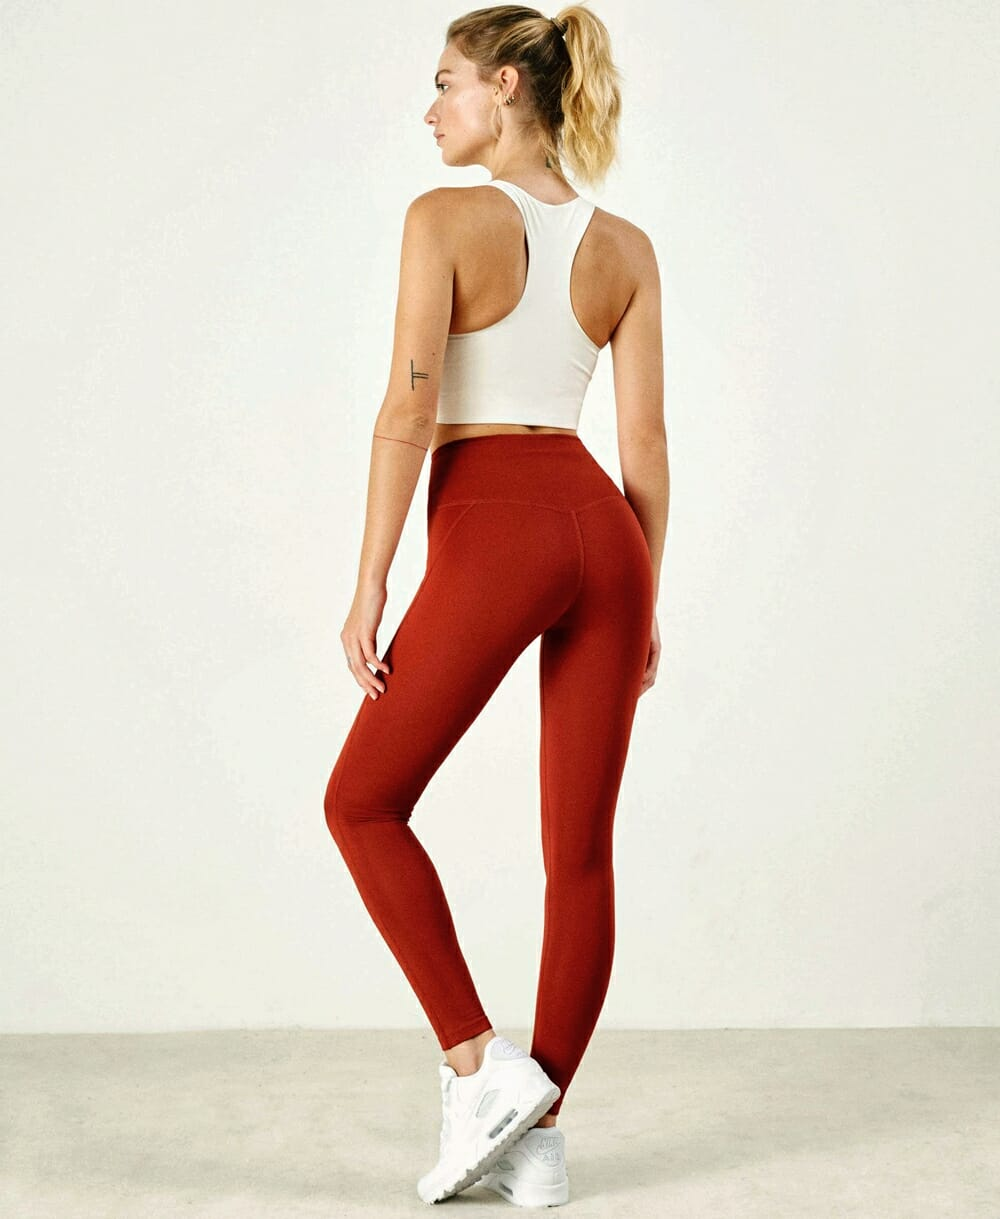 Eco-Friendly Activewear - Girlfriend Collective red and white